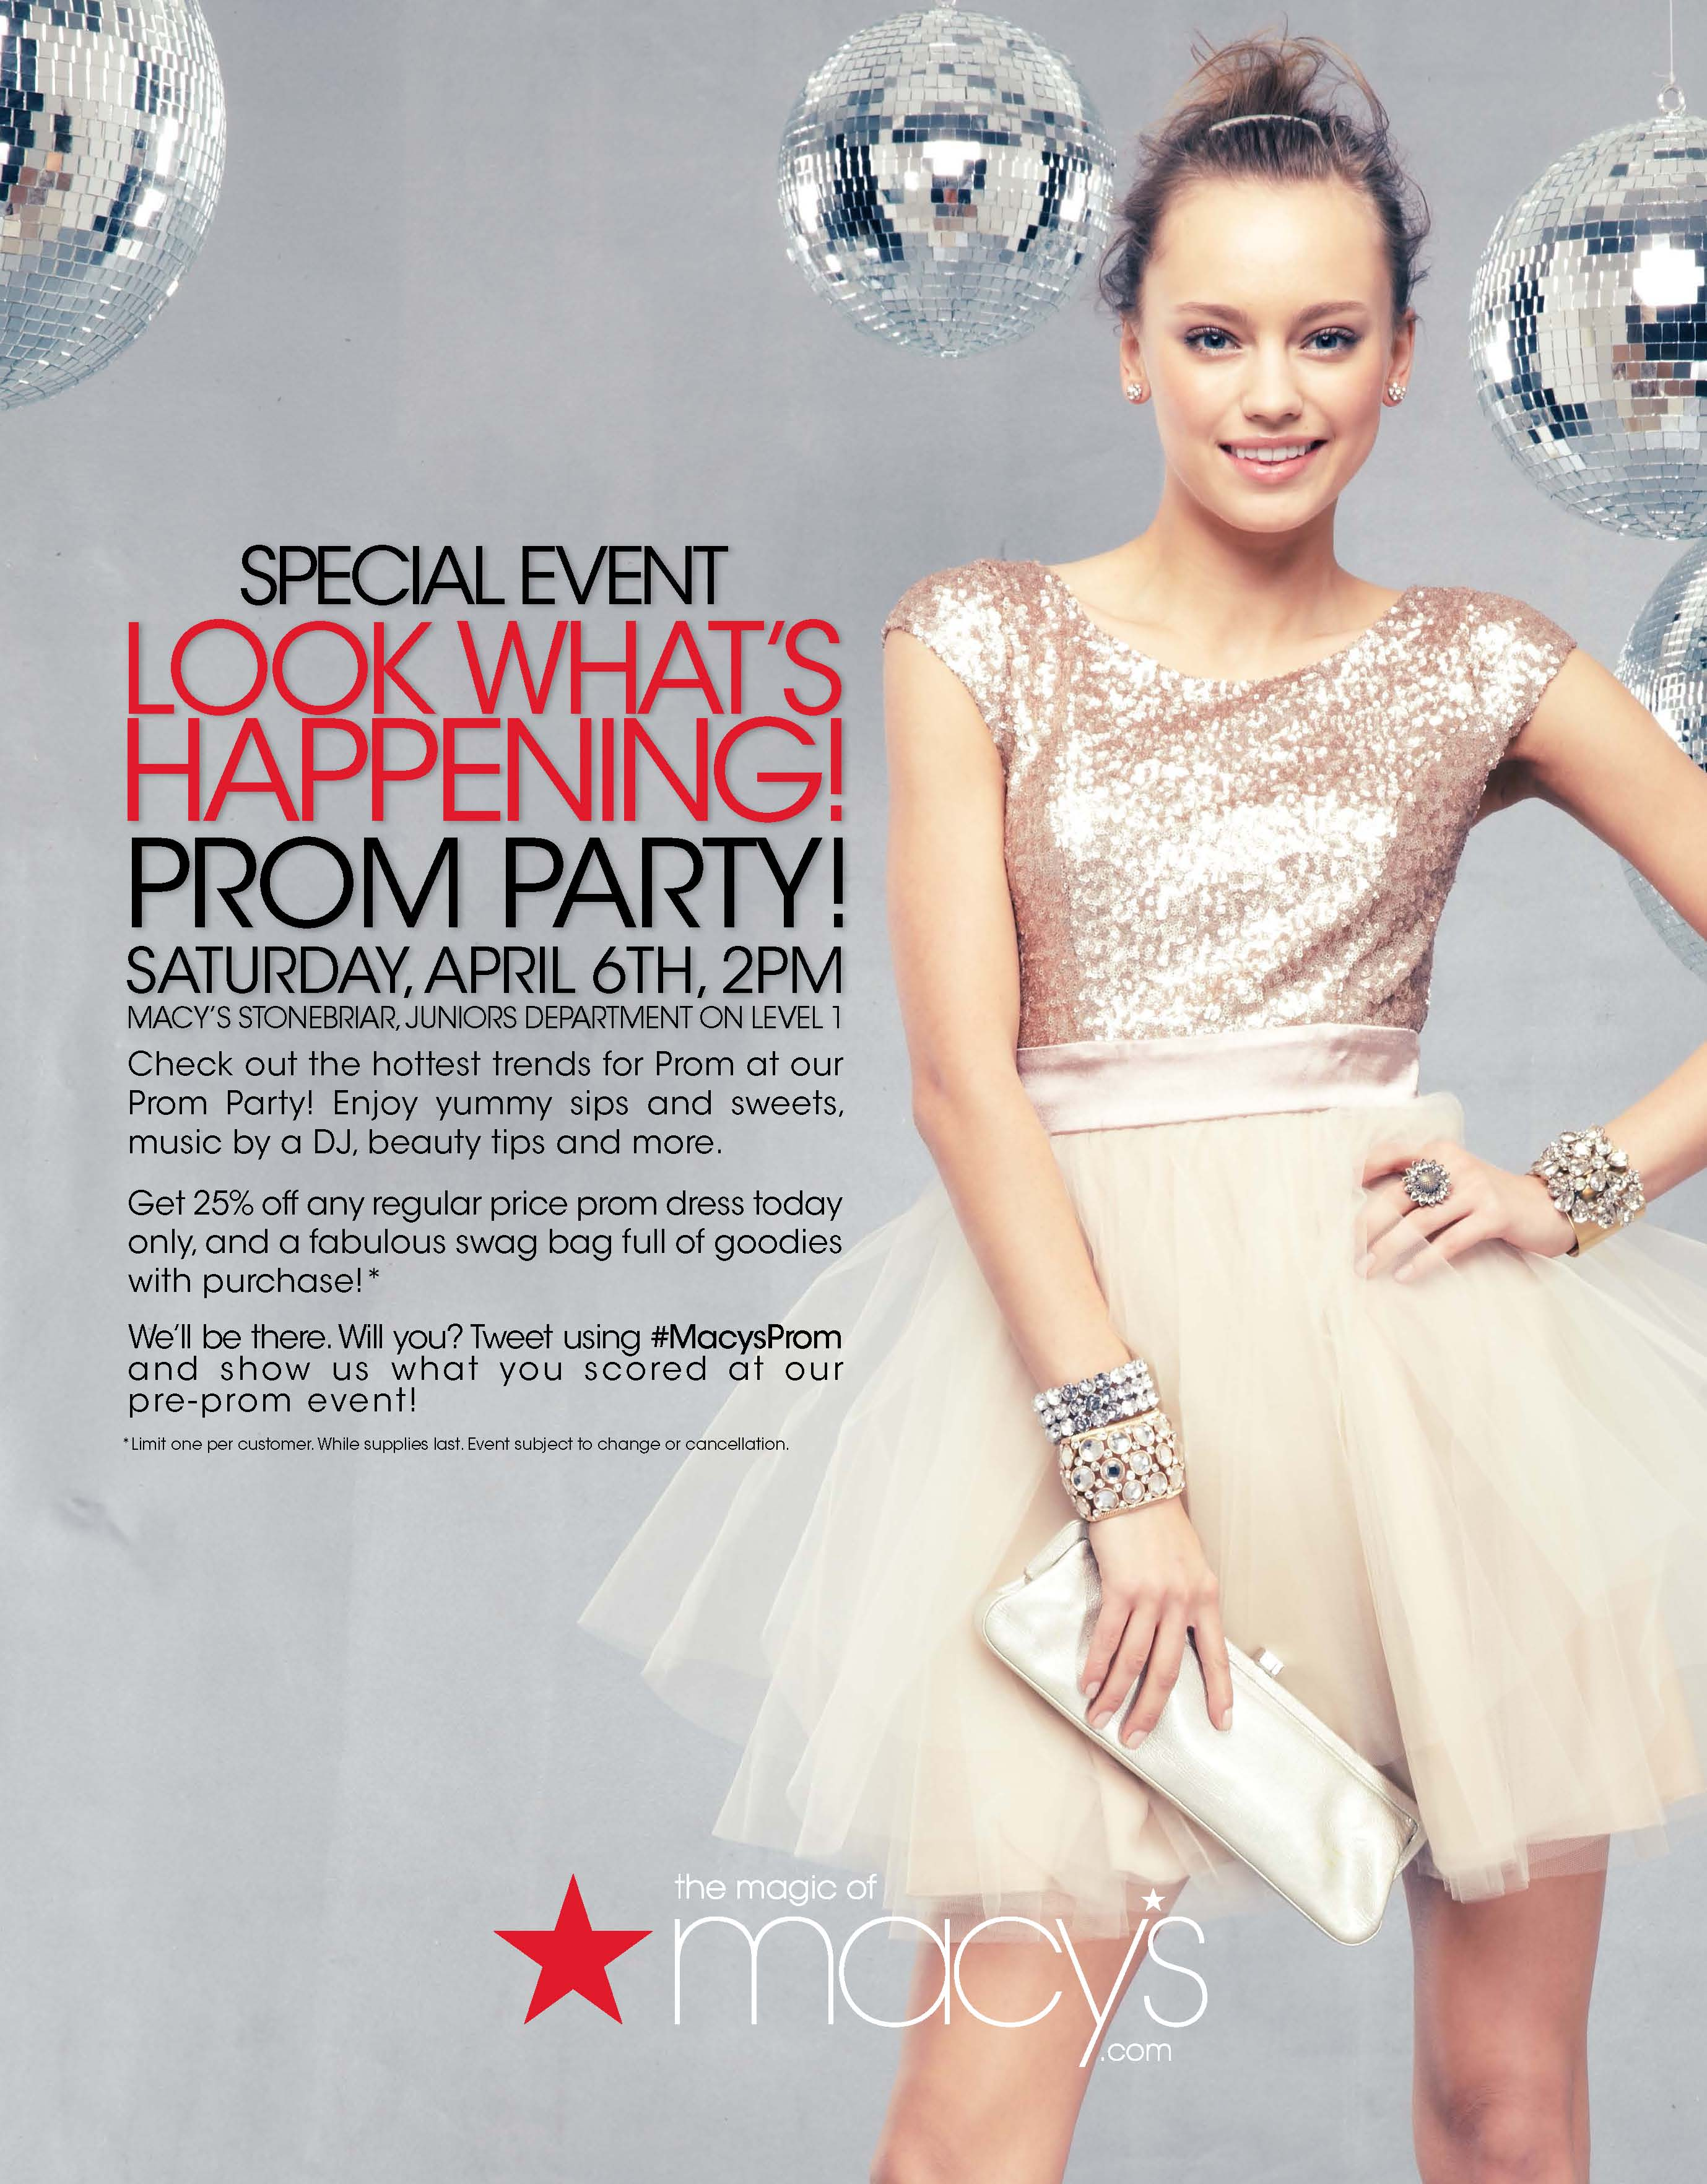 Macy's Prom Shopping Party April 6, 2:00 PM  Check out the hottest trends for Prom at our Prom Party! Enjoy yummy sips and sweets, music by a DJ, beauty tips and more. Get 25% off any regular price prom dress today only, and a fabulous swag bag full of goodies with purchase!* We'll be there. Will you? Tweet using #MacysProm and show us what you scored at our pre-prom event! LOOK WHAT'S HAPPENING! Sat urda y, april 6th, 2pm Mac y's Stone briar, Juniors depa rtment on Level 1 PROM PARTY! *Limit one per customer. While supplies last. Event subject to change or cancellation.